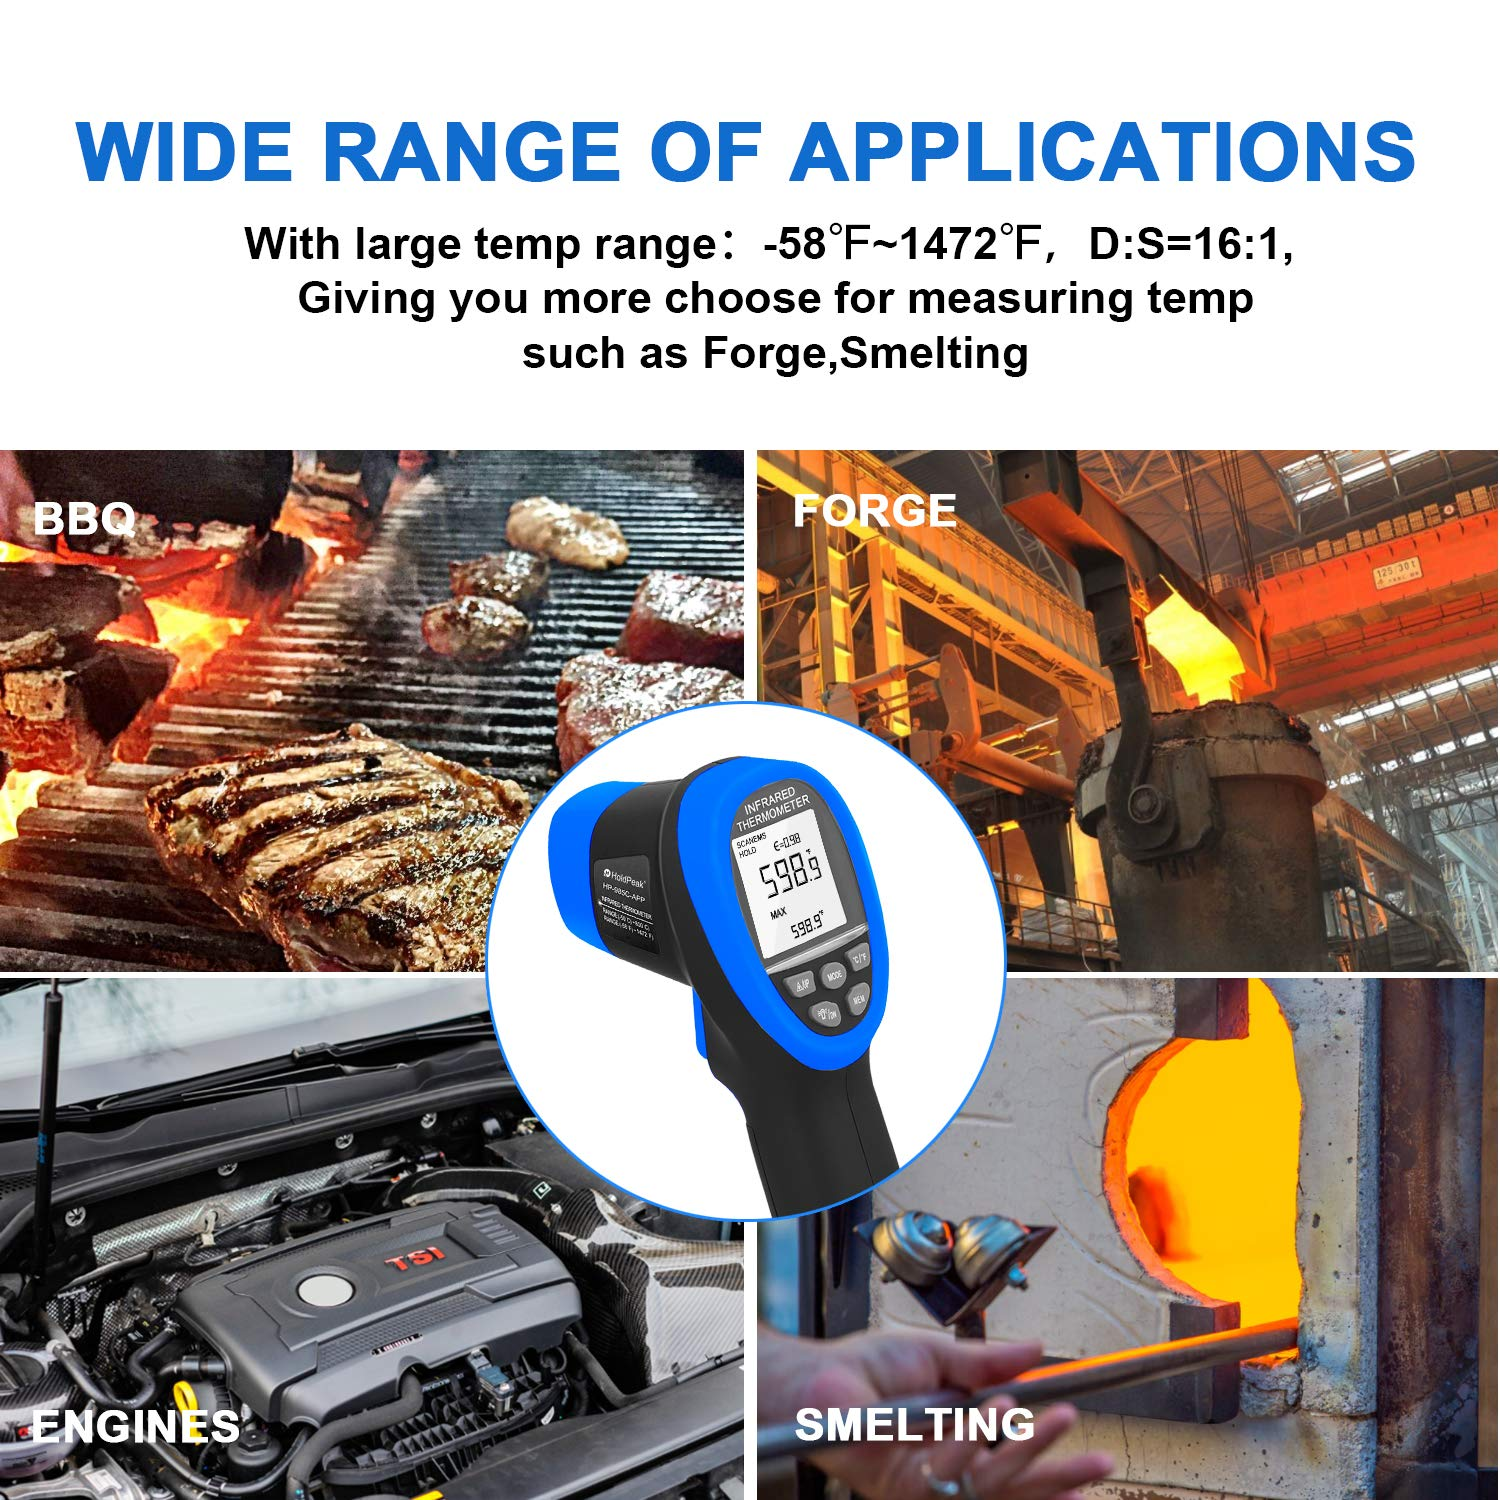 HOLDPEAK HP-985C-APP Infrared Thermometer Gun Connect to Your Phone via Bluetooth with APP,Non-Contact IR Temperature Gun -58 to1472℉(-50 to 800℃),DS 16:1 with Adjustable Emissivity for Forge Kiln by H HOLDPEAK (Image #7)